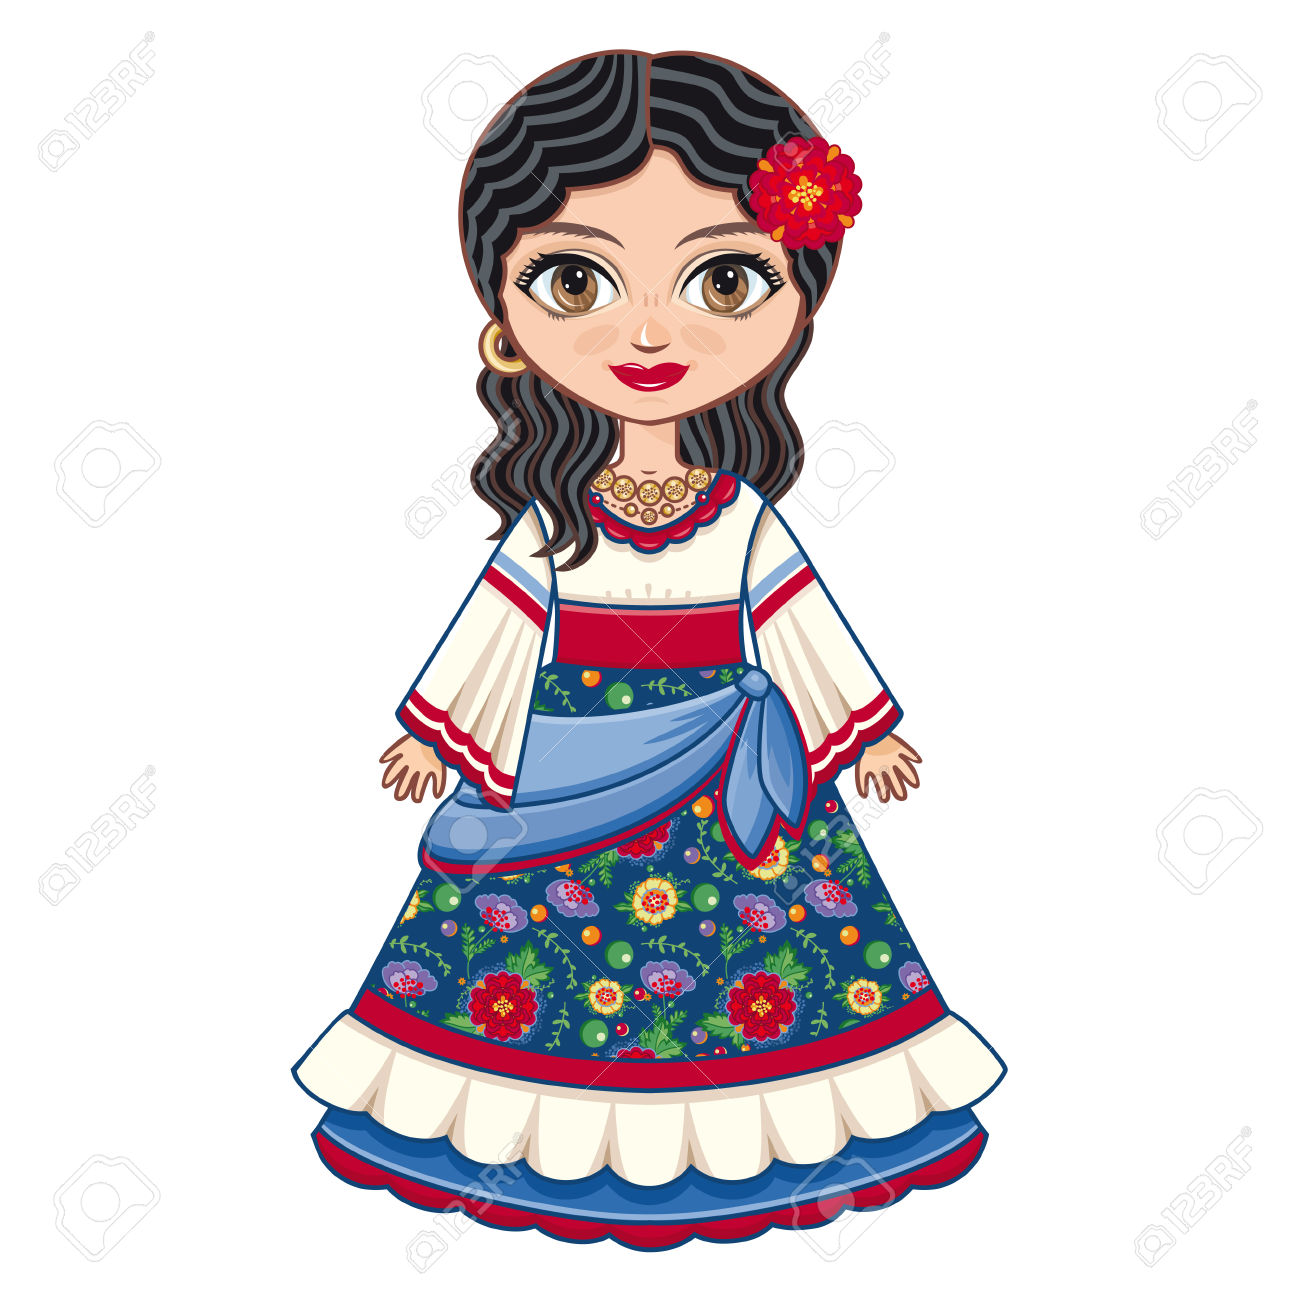 296 Gipsy Stock Vector Illustration And Royalty Free Gipsy Clipart.